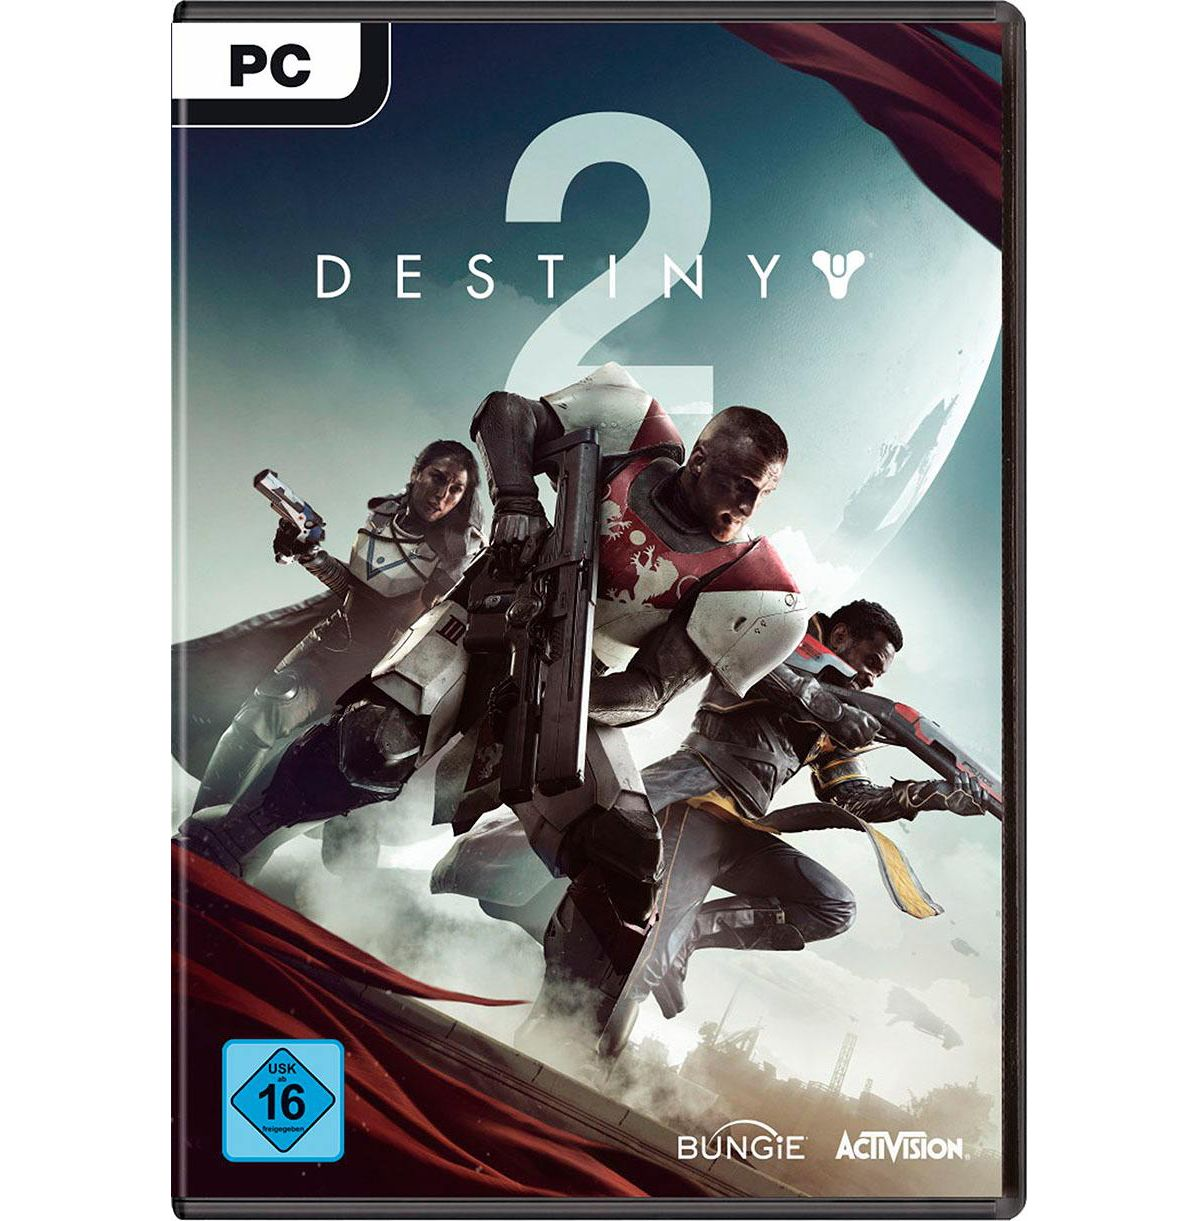 Destiny 2 (DLC) PC